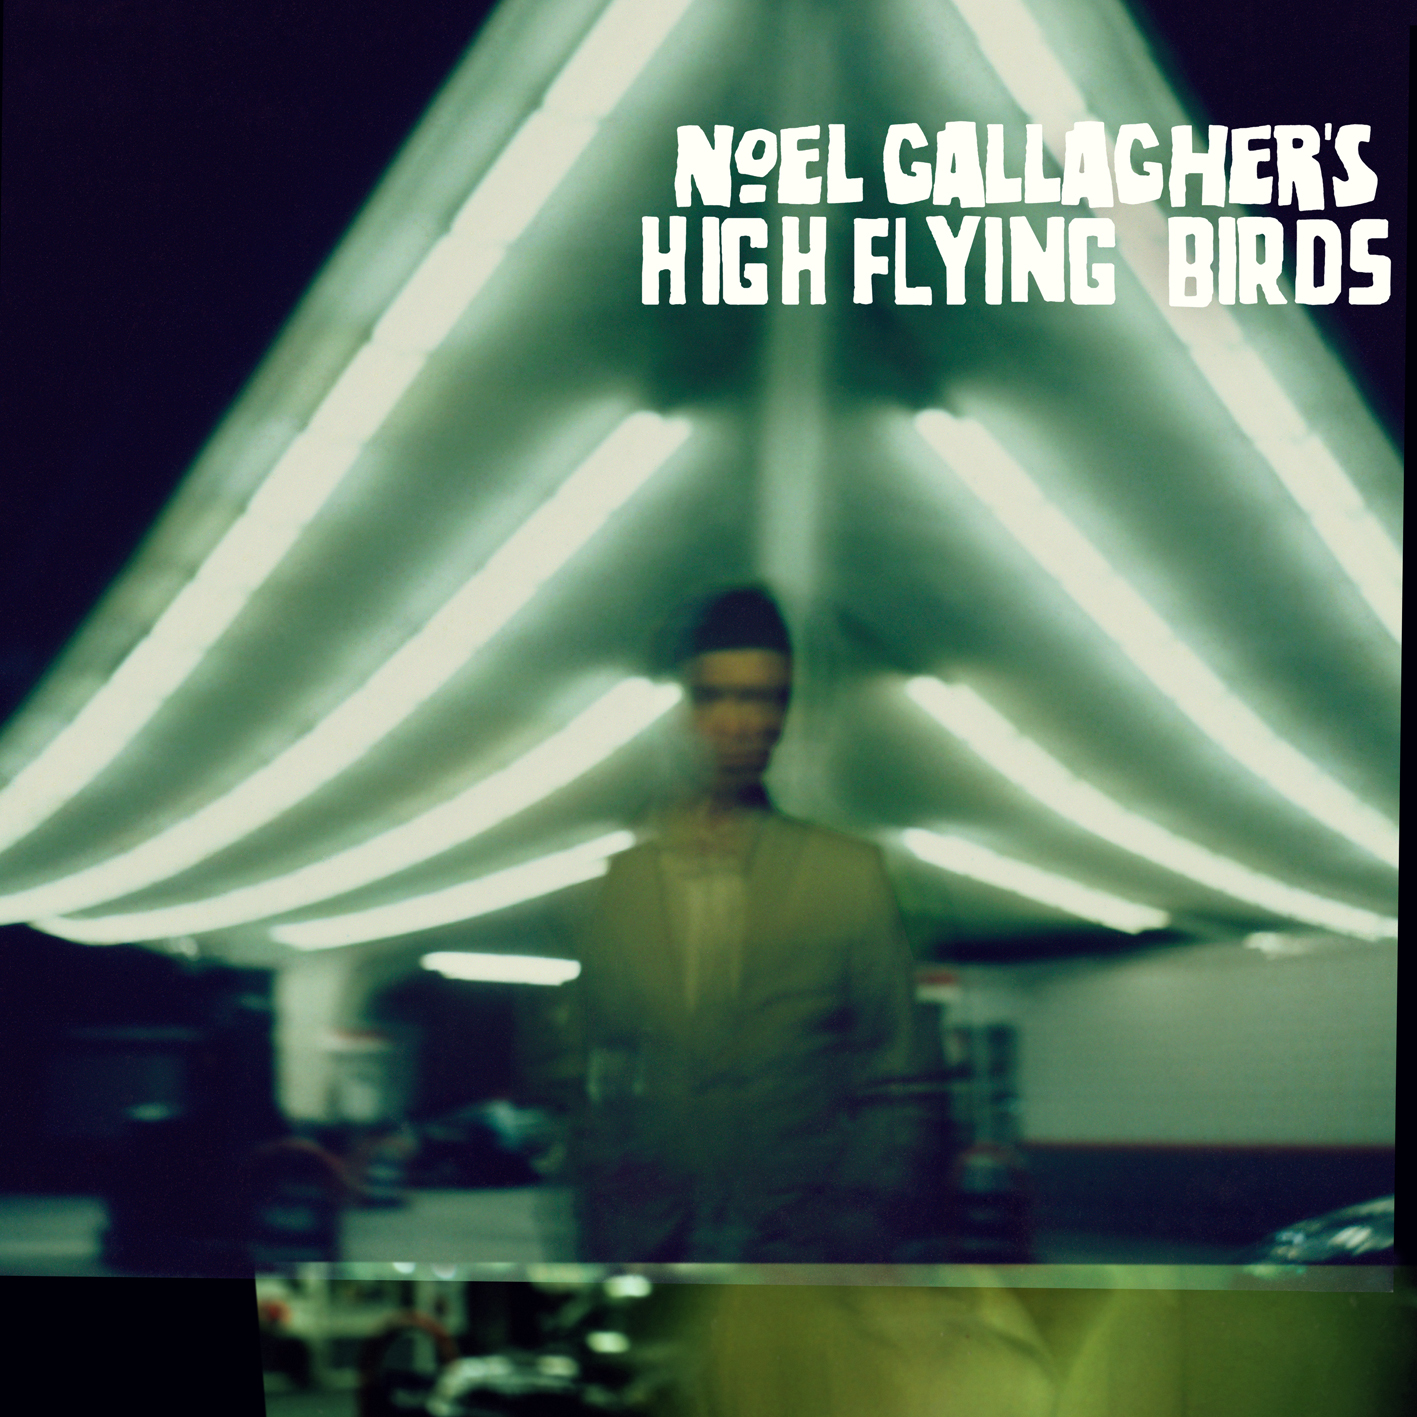 Noel Gallagher's High Flying Birds Album Cover Gas Station Location